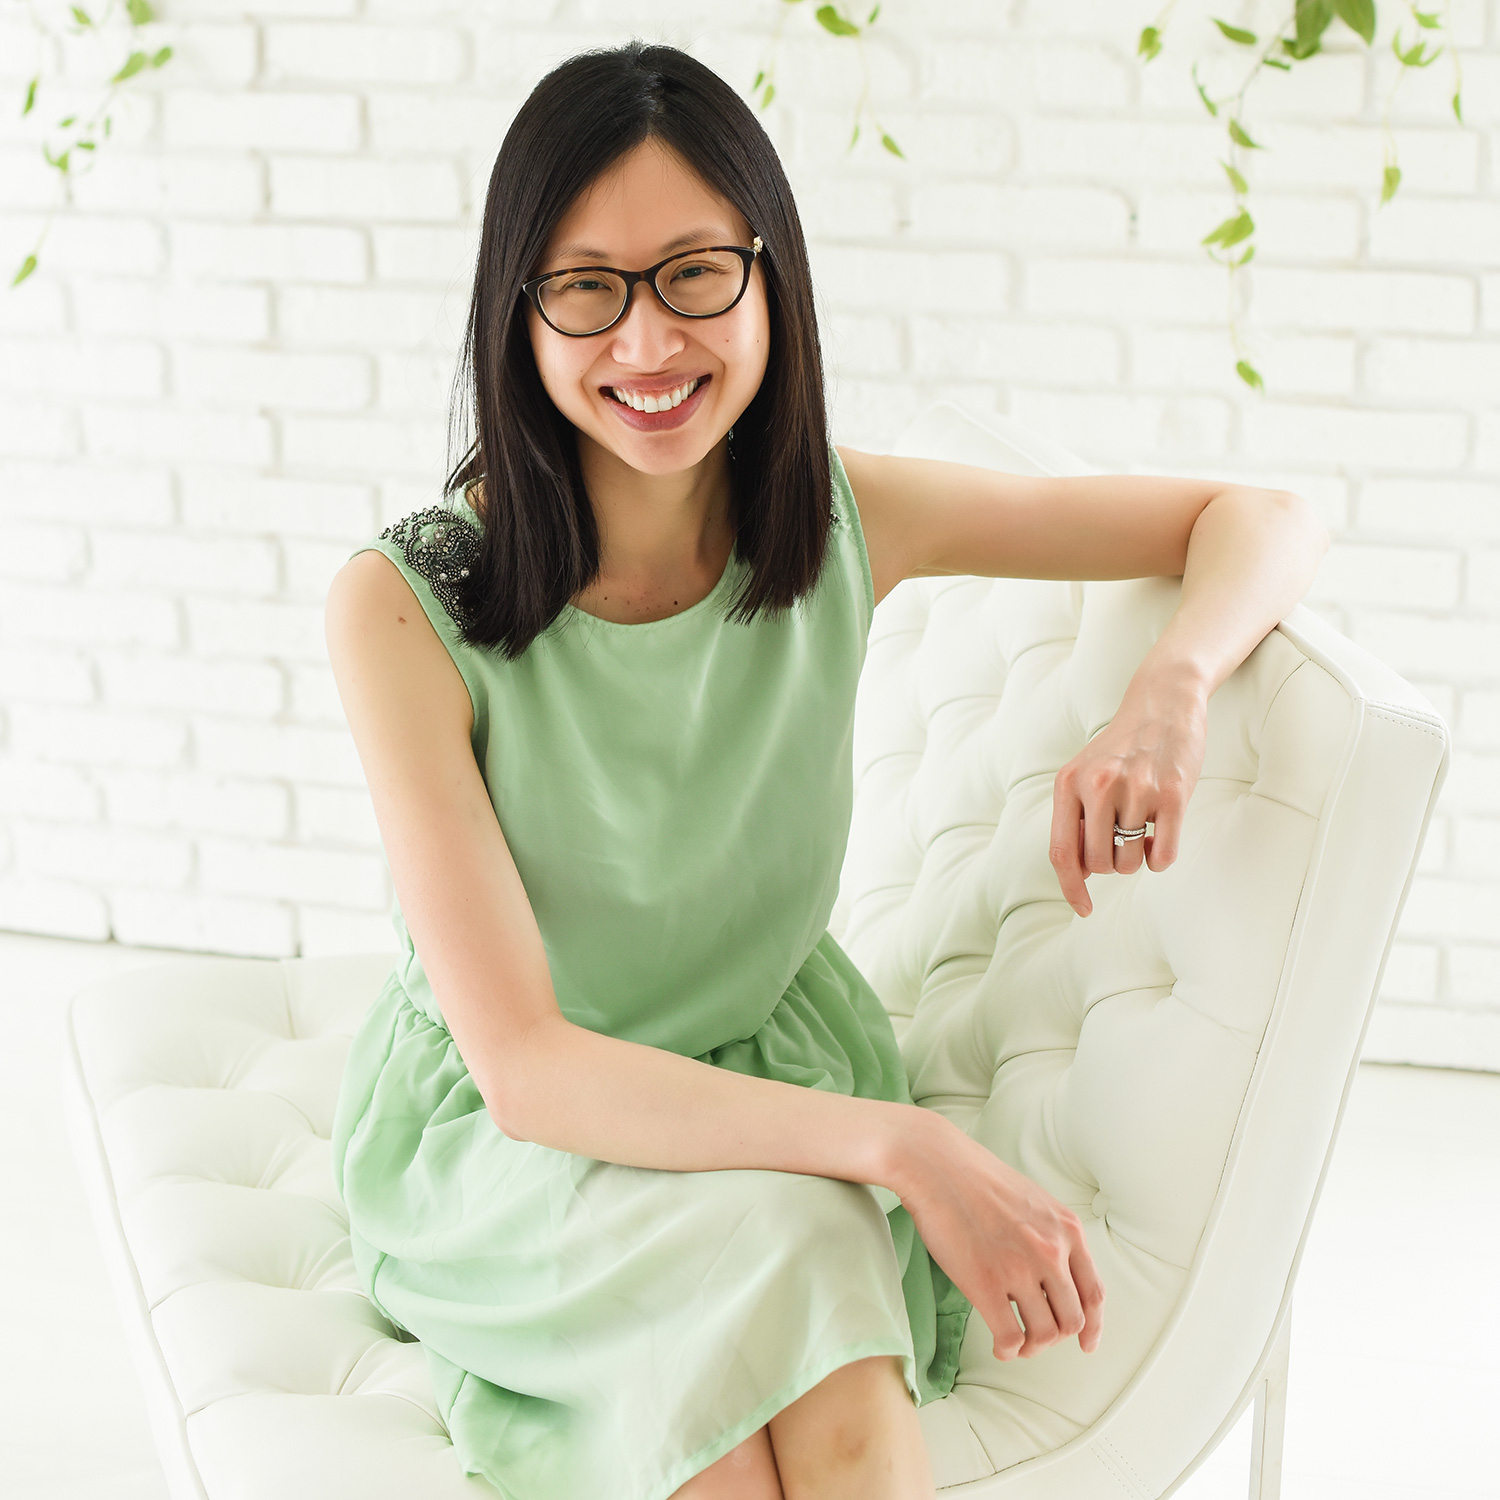 hi, I'm Mun Cho. - I'm a Registered Dietitian and Nutritionist specializing in pediatric nutrition, food allergies and eating disorders. I guide parents to let go of rigid rules and replace their fears with confidence to provide nutritional balance for their families. As a food allergy mom of two, I understand how hard it is to navigate different food allergies.